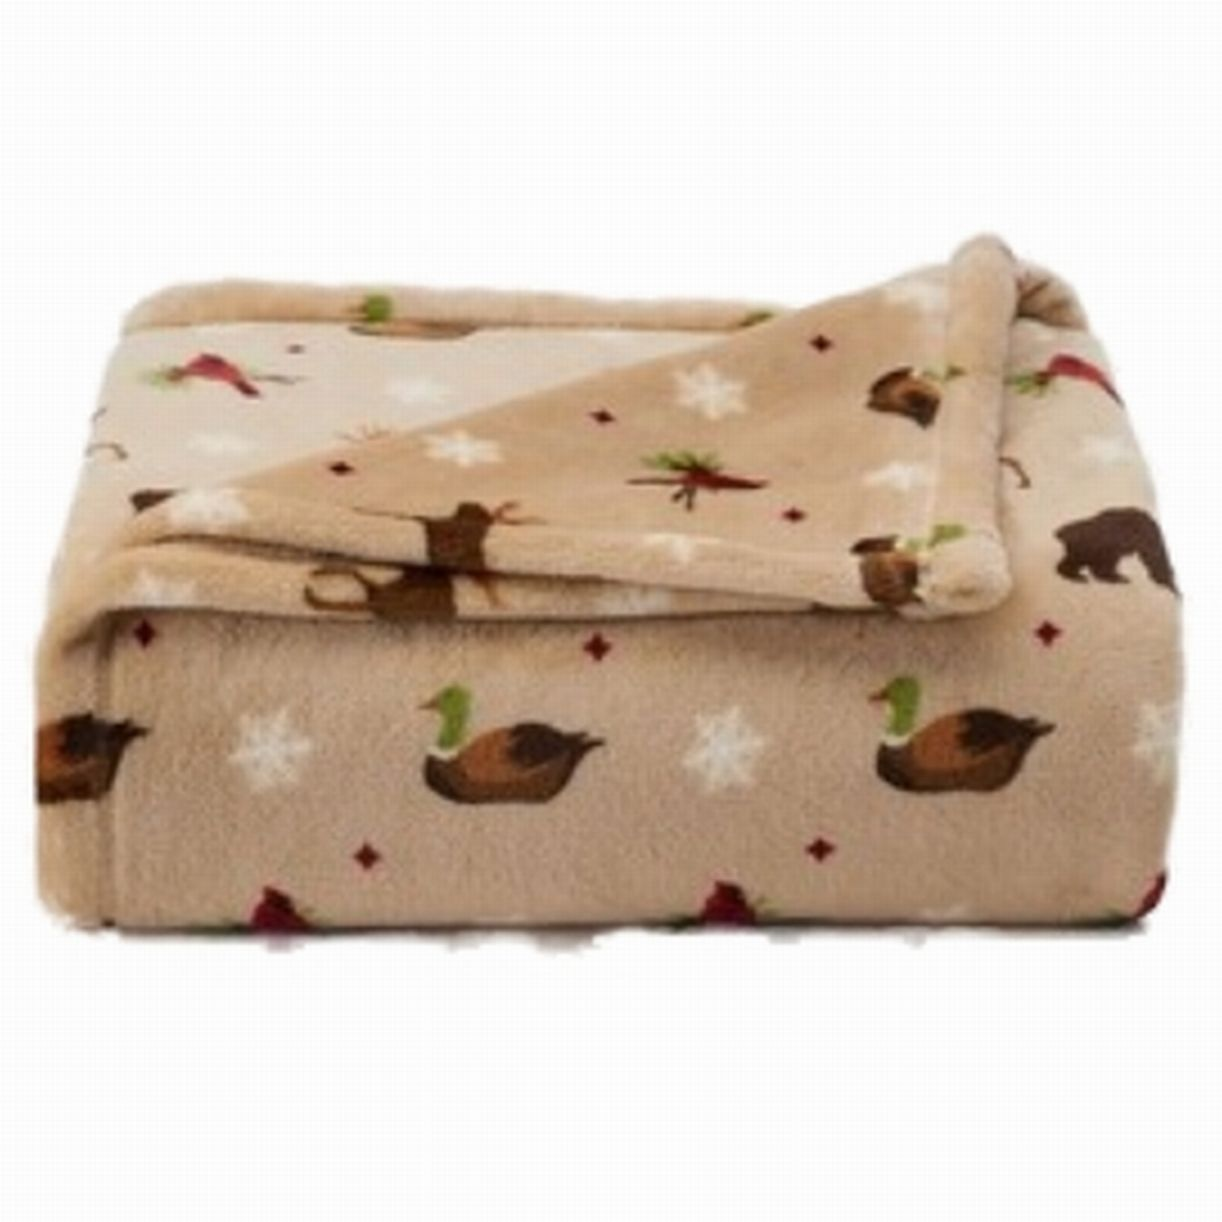 The Big One Plush Soft Lodge Duck Elk Animals Oversized Microplush Throw Blanket